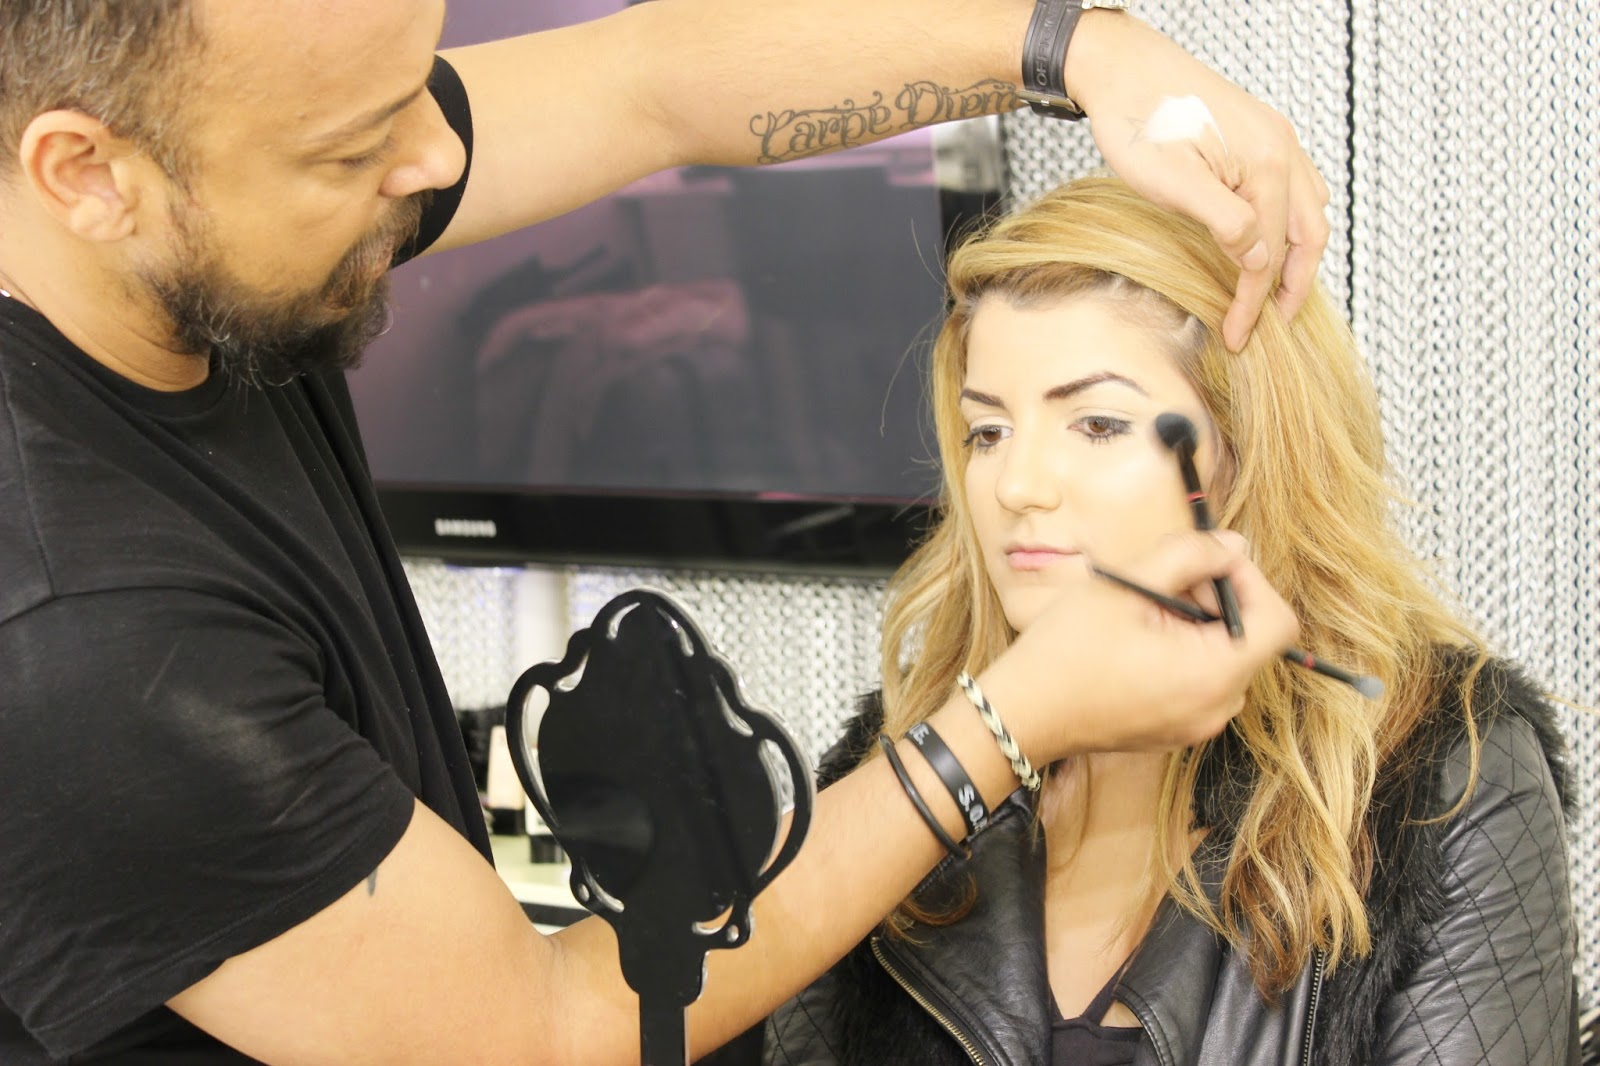 Illamasqua skin sculpting course - highlighting in progress